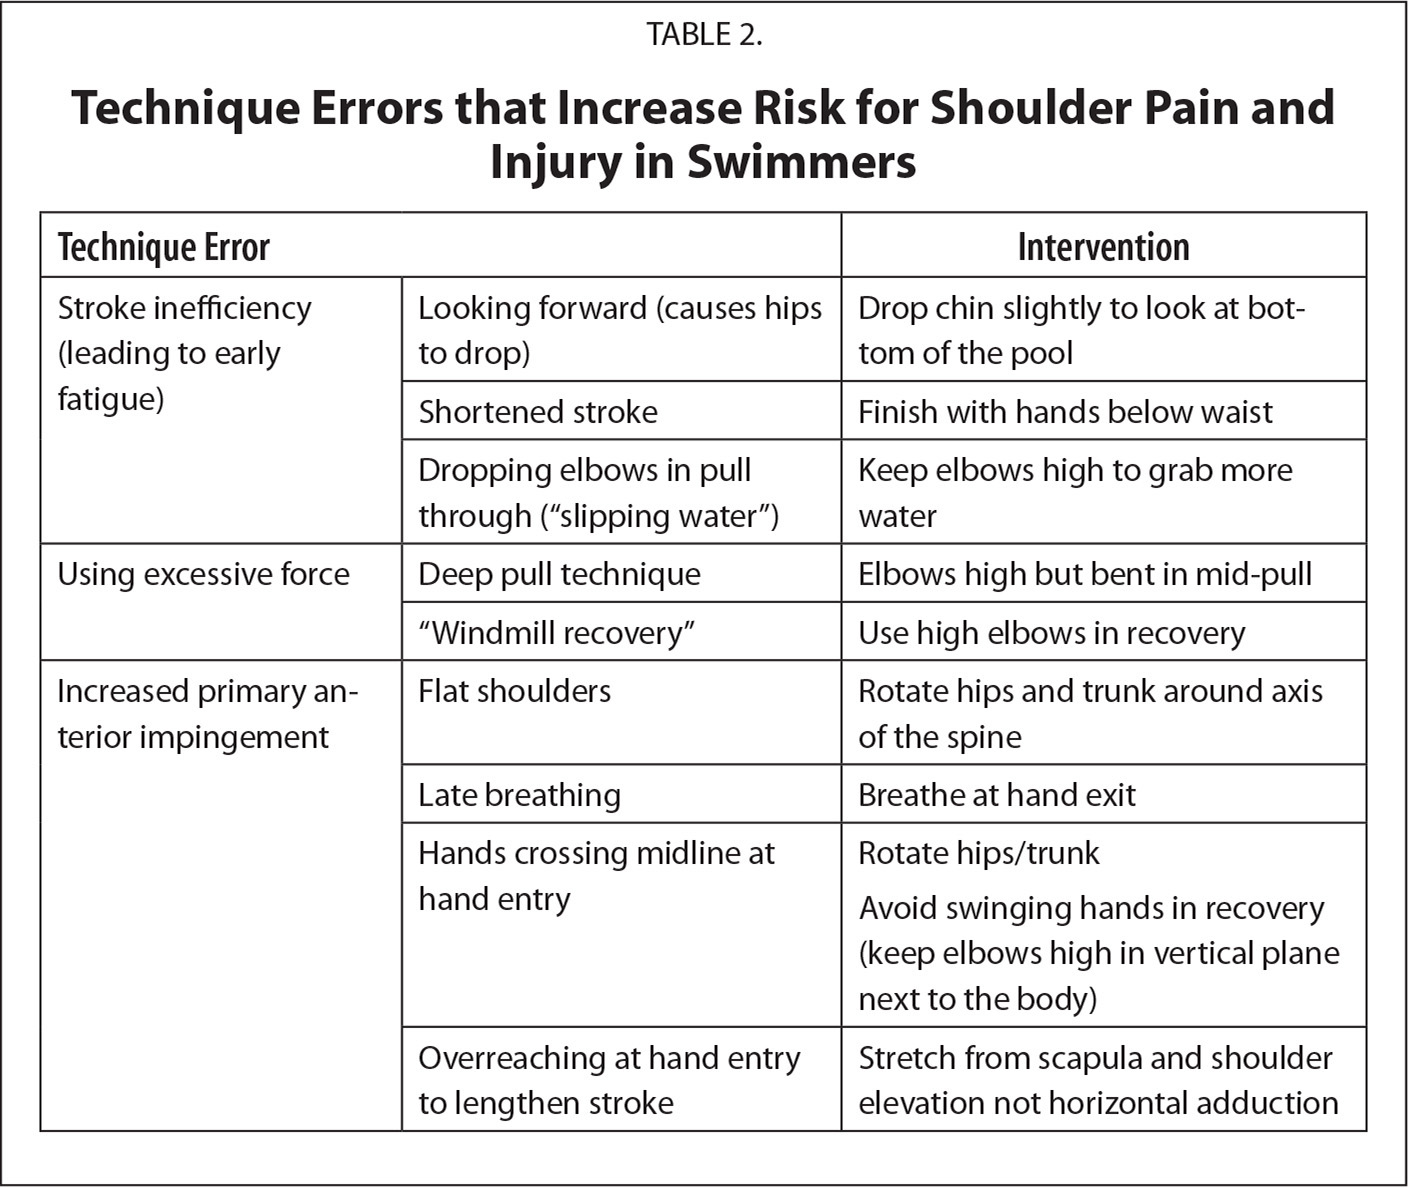 Technique Errors that Increase Risk for Shoulder Pain and Injury in Swimmers